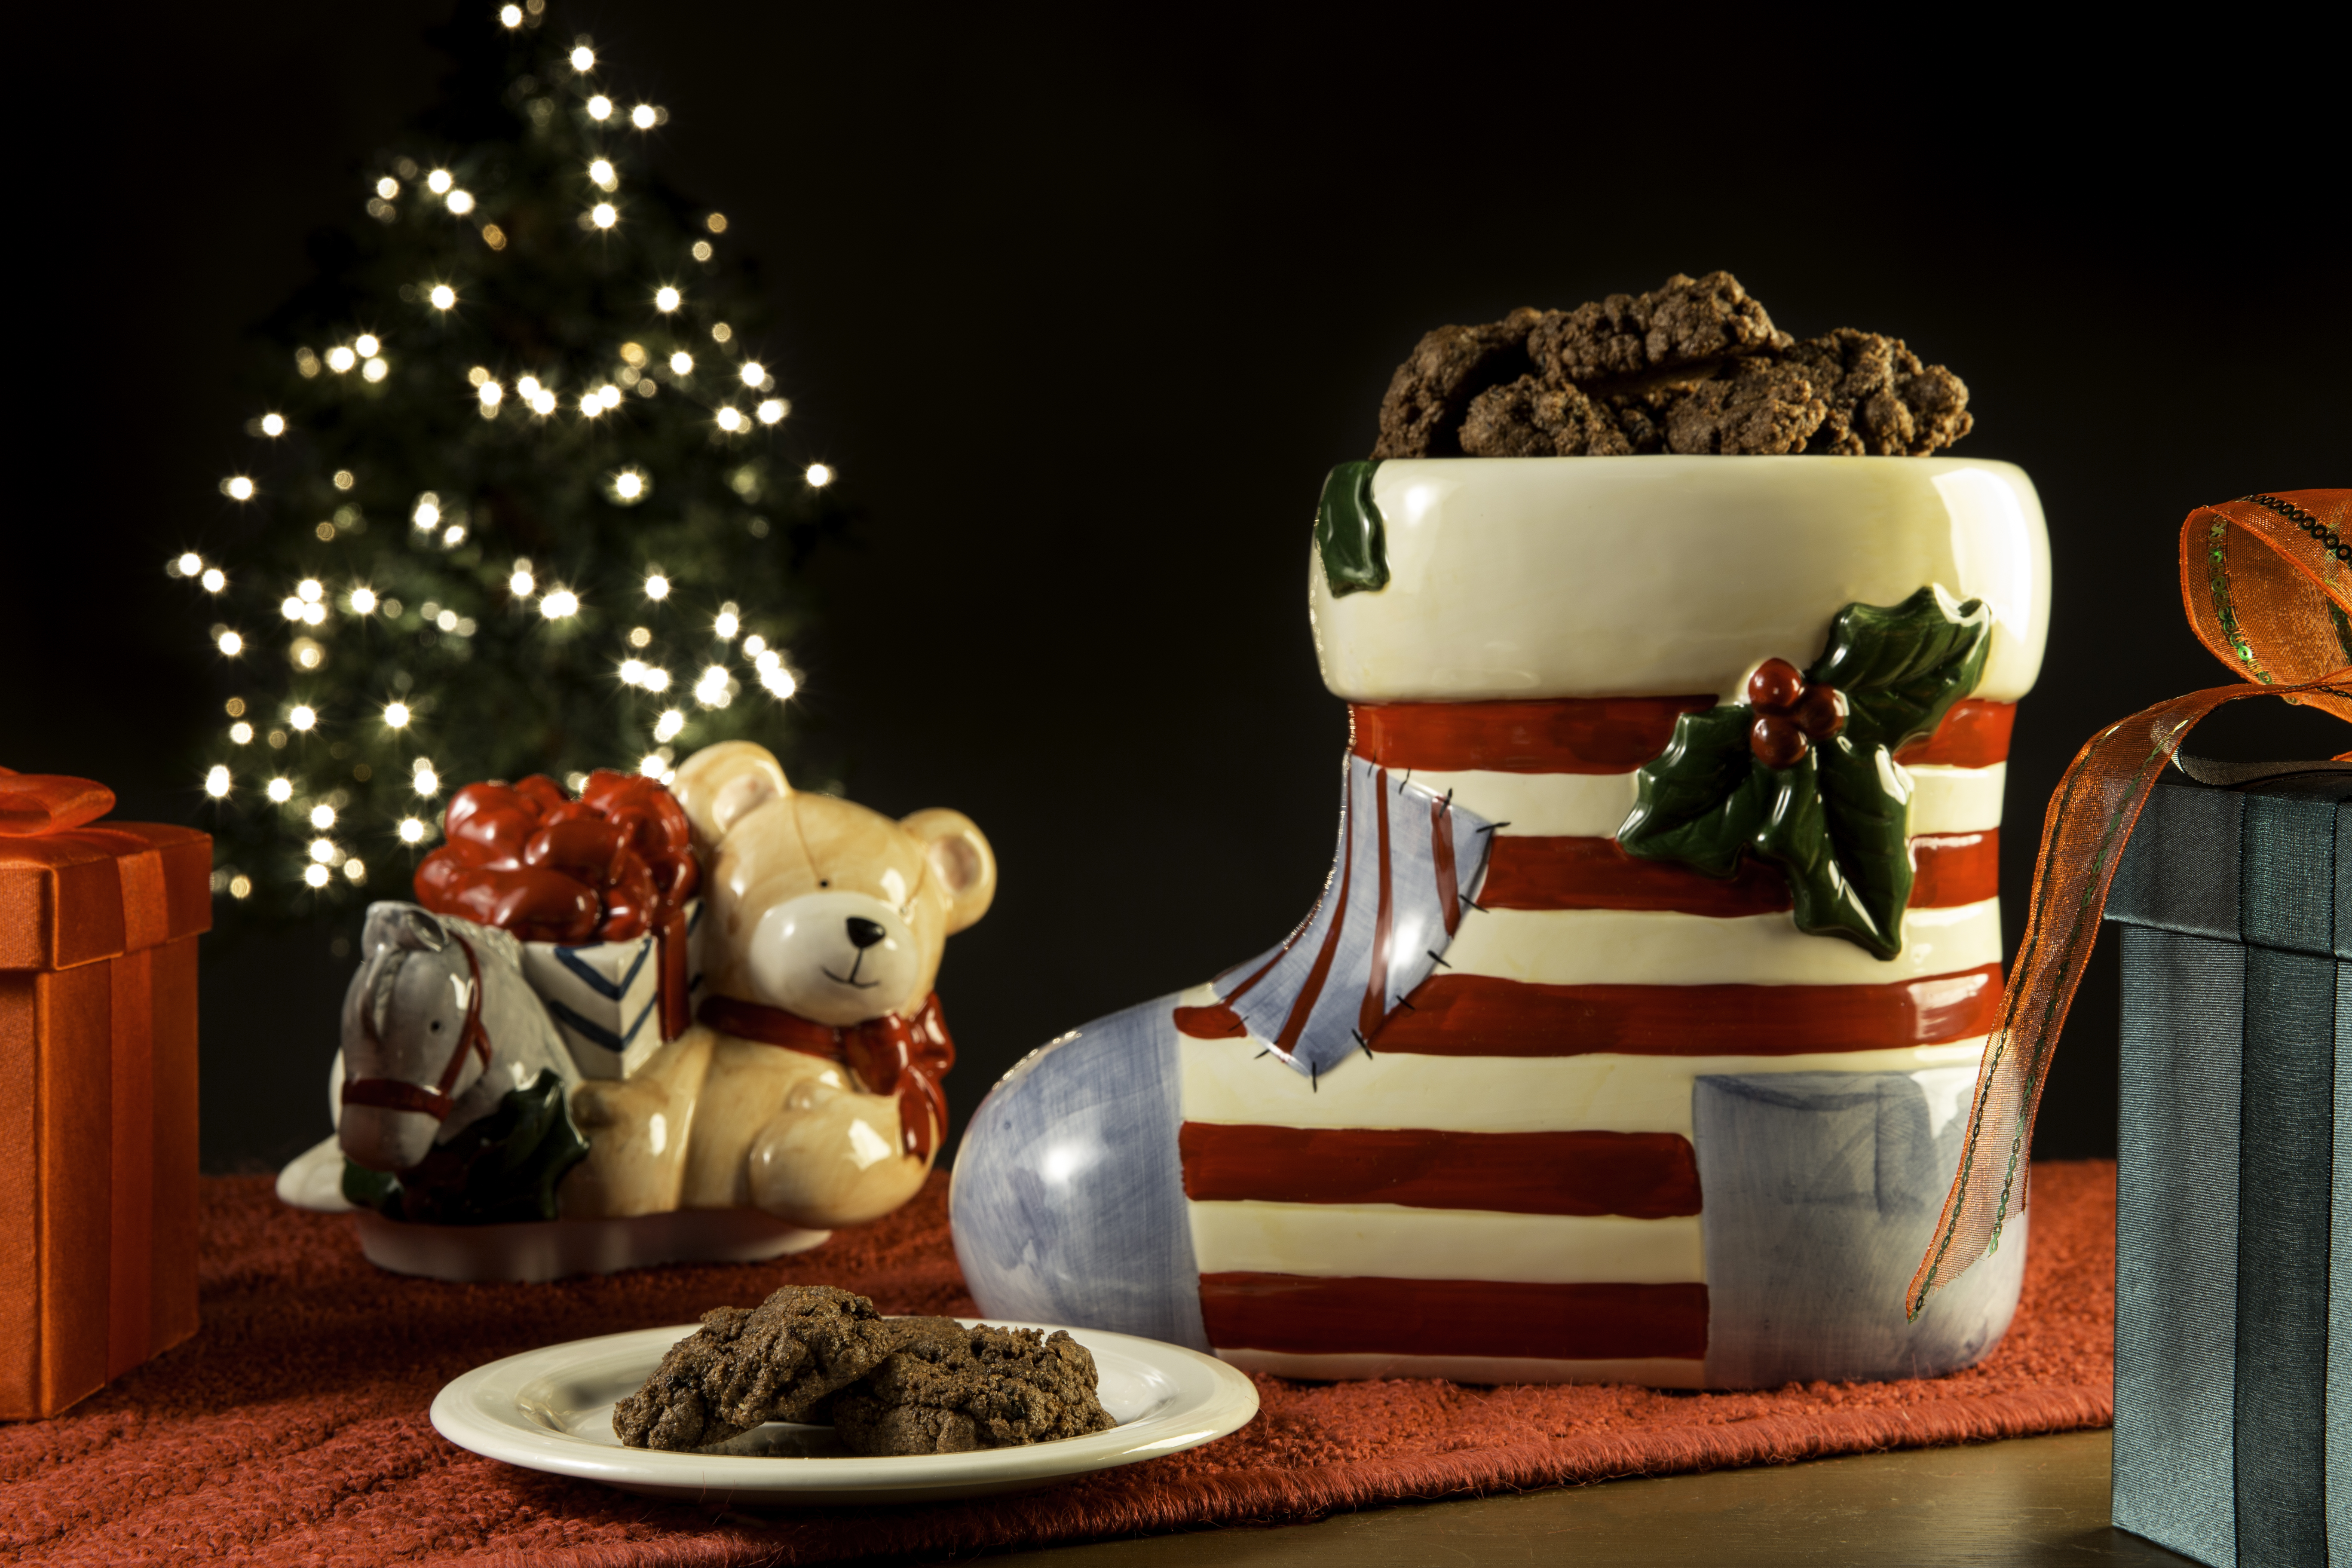 What's going to be in your stocking? If it's like our fun Christmas stocking cookie jar, it just might be coal! However, that doesn't necessarily mean you've been bad this year—it just means you get to eat a delicious lump of chocolate that you can customize to your own tastes. Warning: this recipe will make your house smell like Christmas!